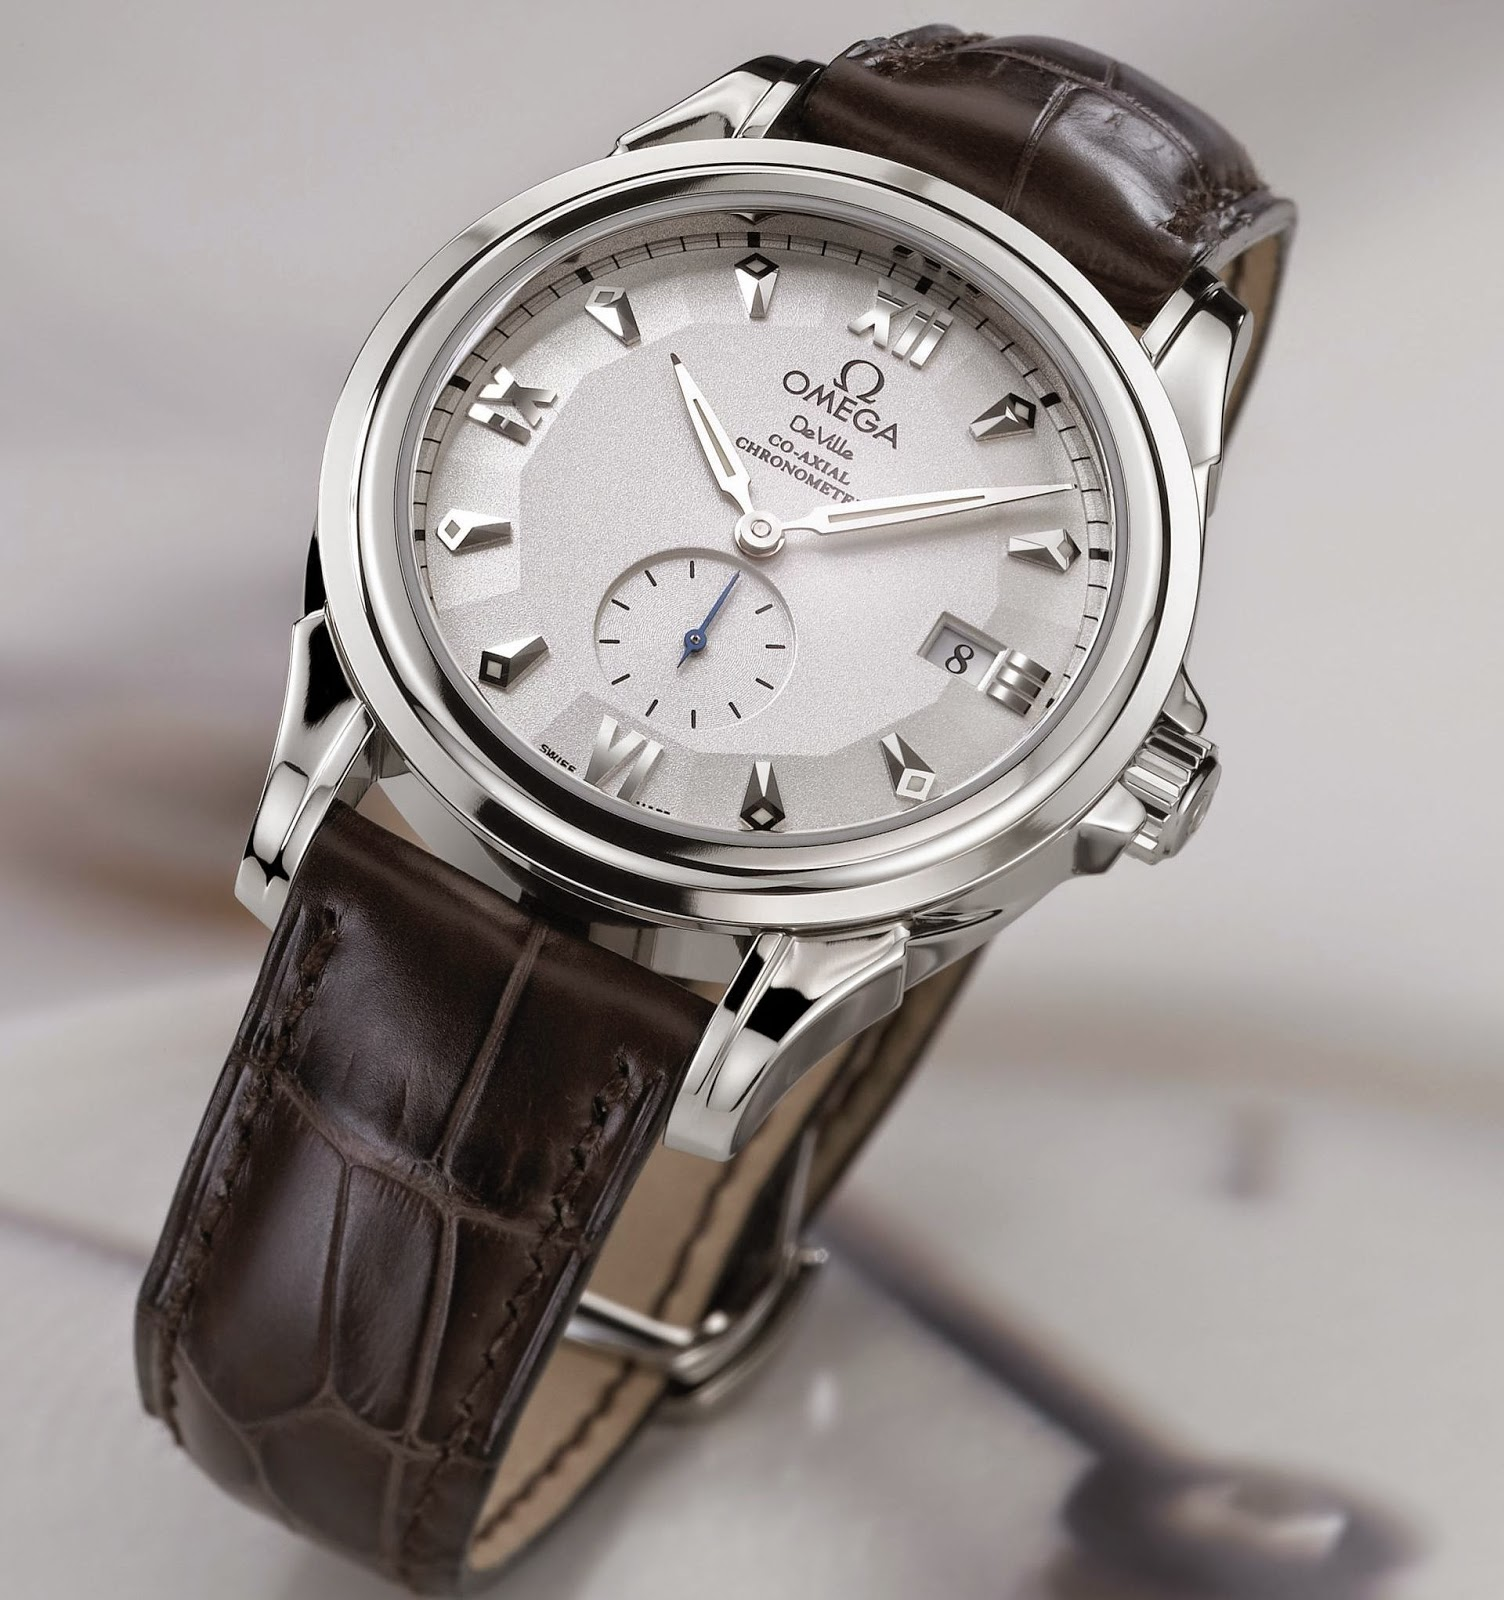 Omega De Ville Co-Axial Small Seconds watch